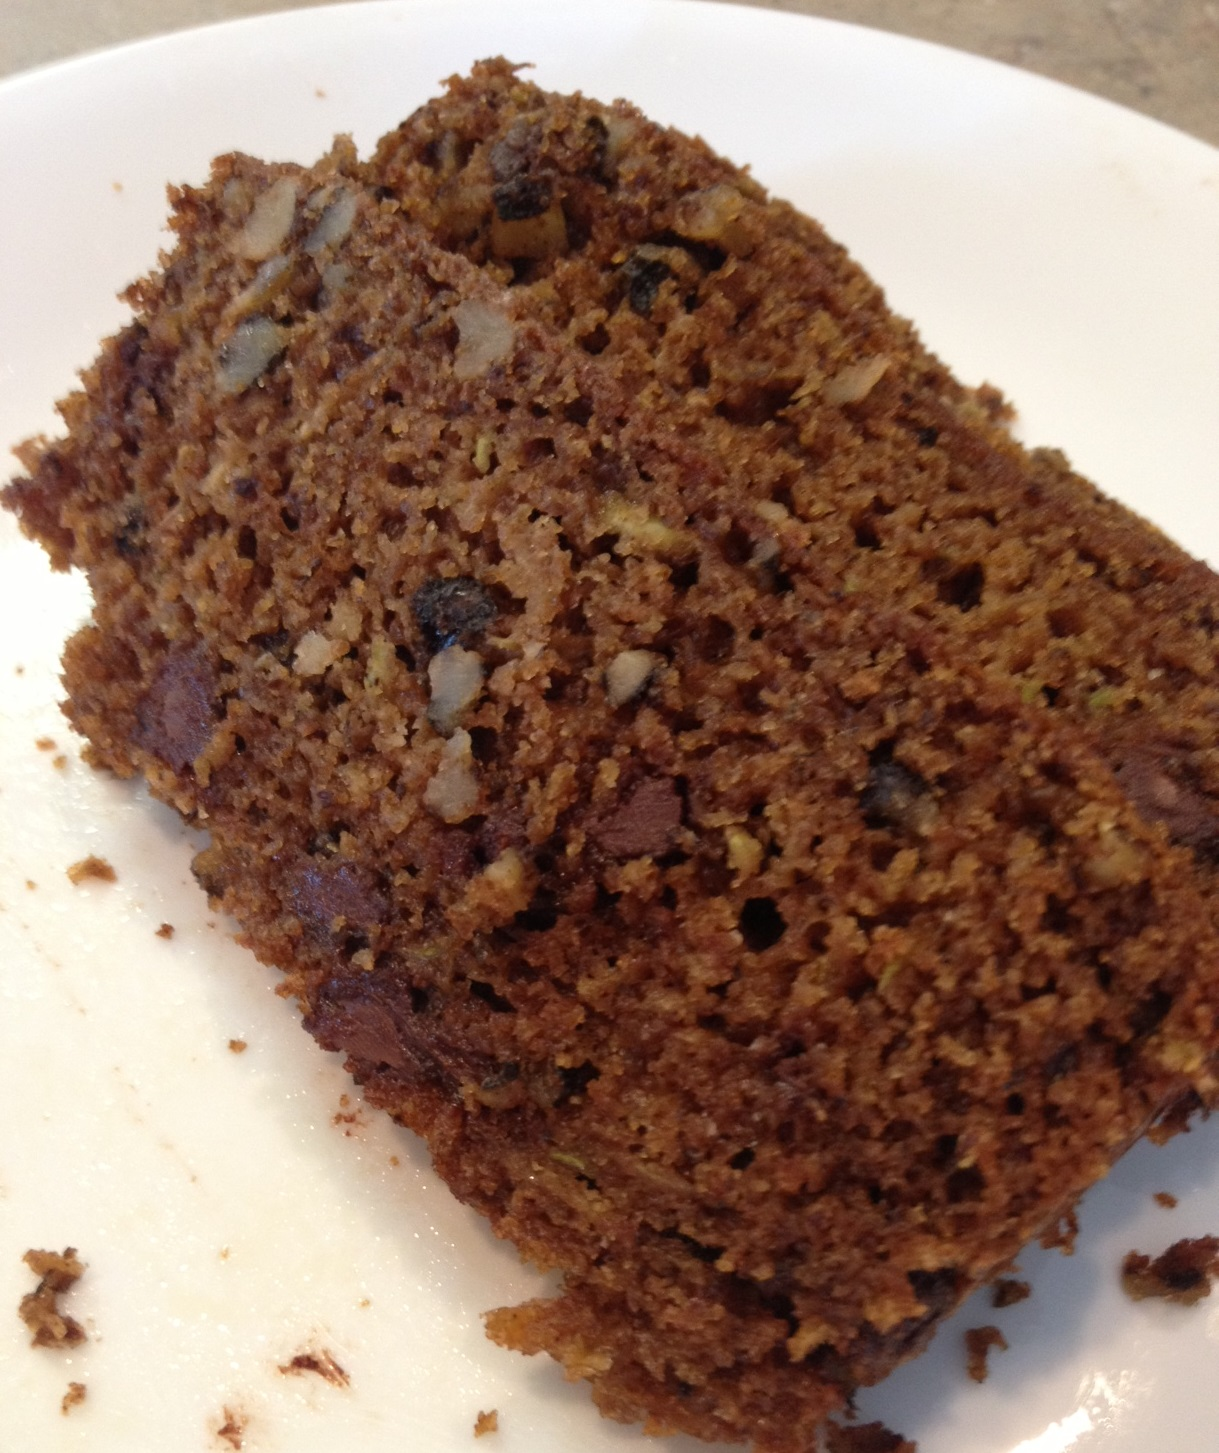 Einkorn Banana Chocolate Chip Zucchini Bread